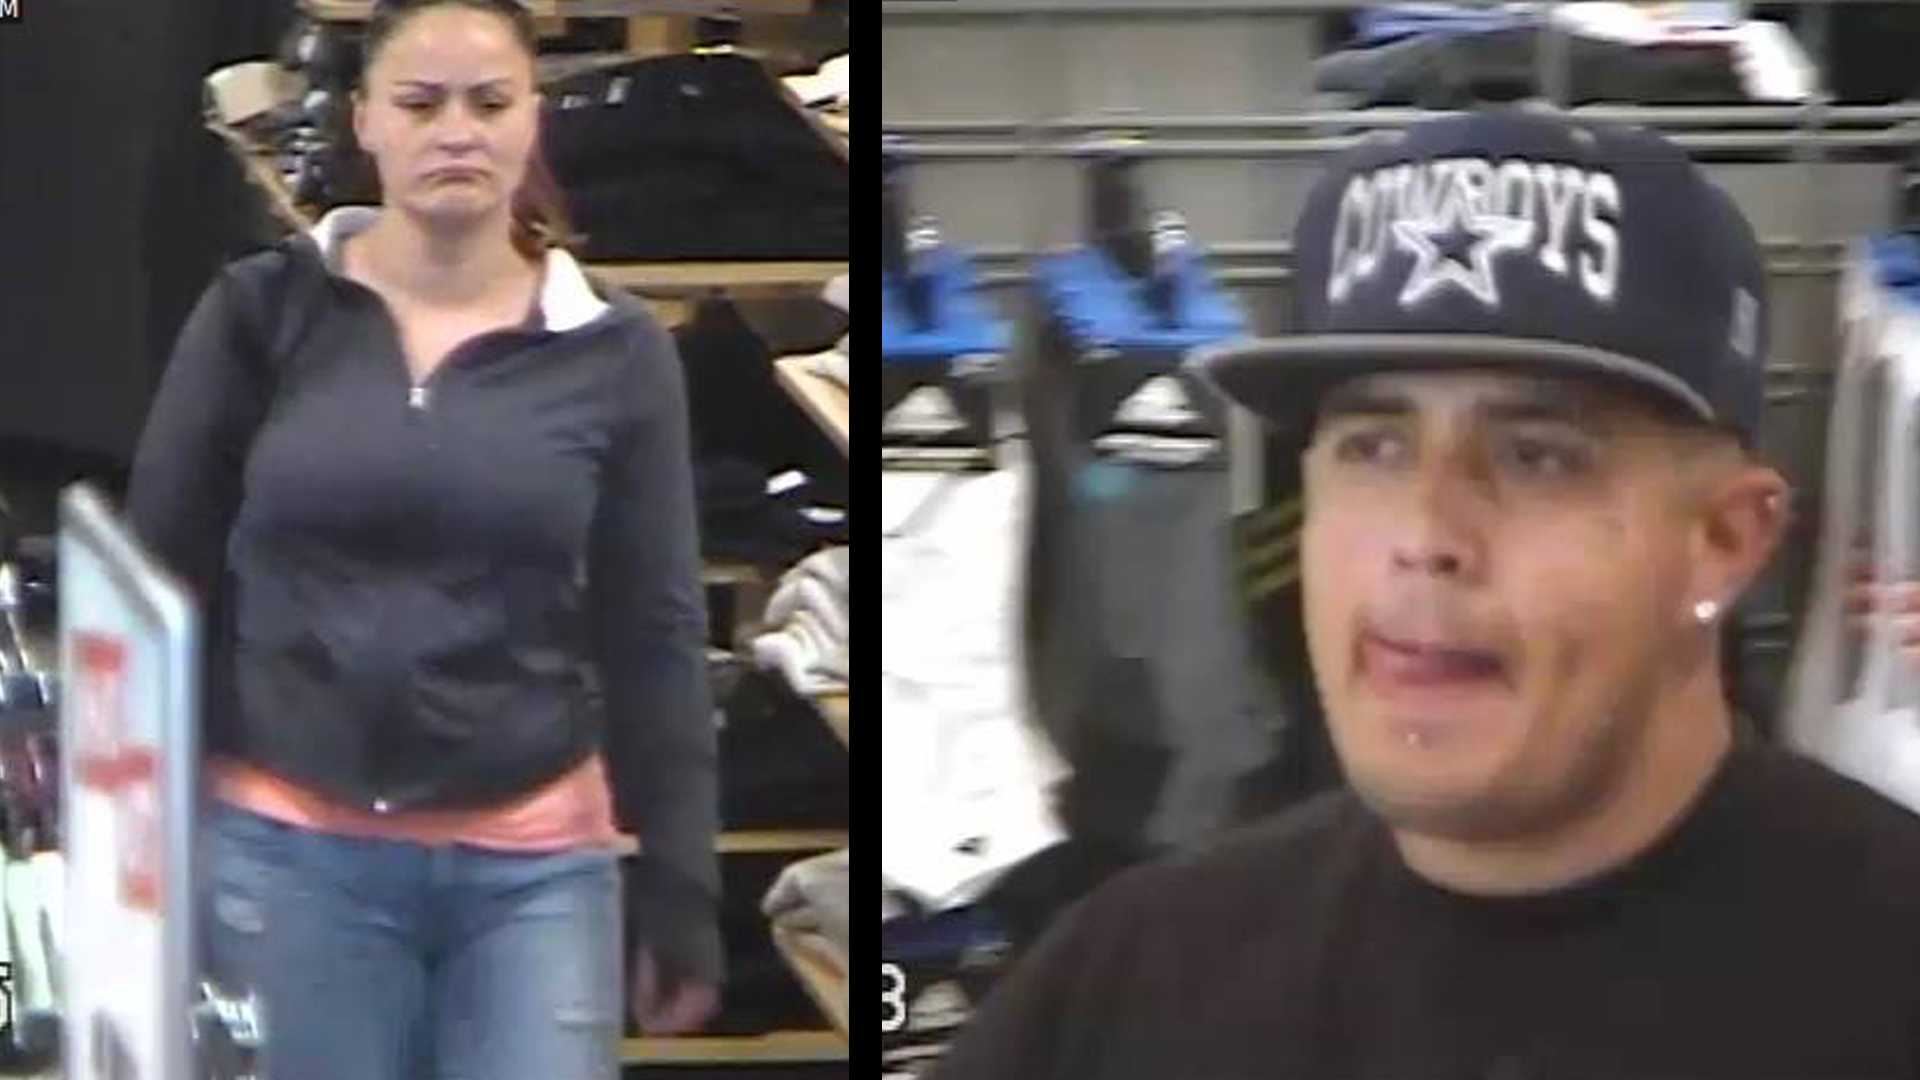 Investigators need help identifying these two people who are suspected of stealing from a business and driving a stolen vehicle, the Stockton Police Department said on Monday, June 5, 2017.